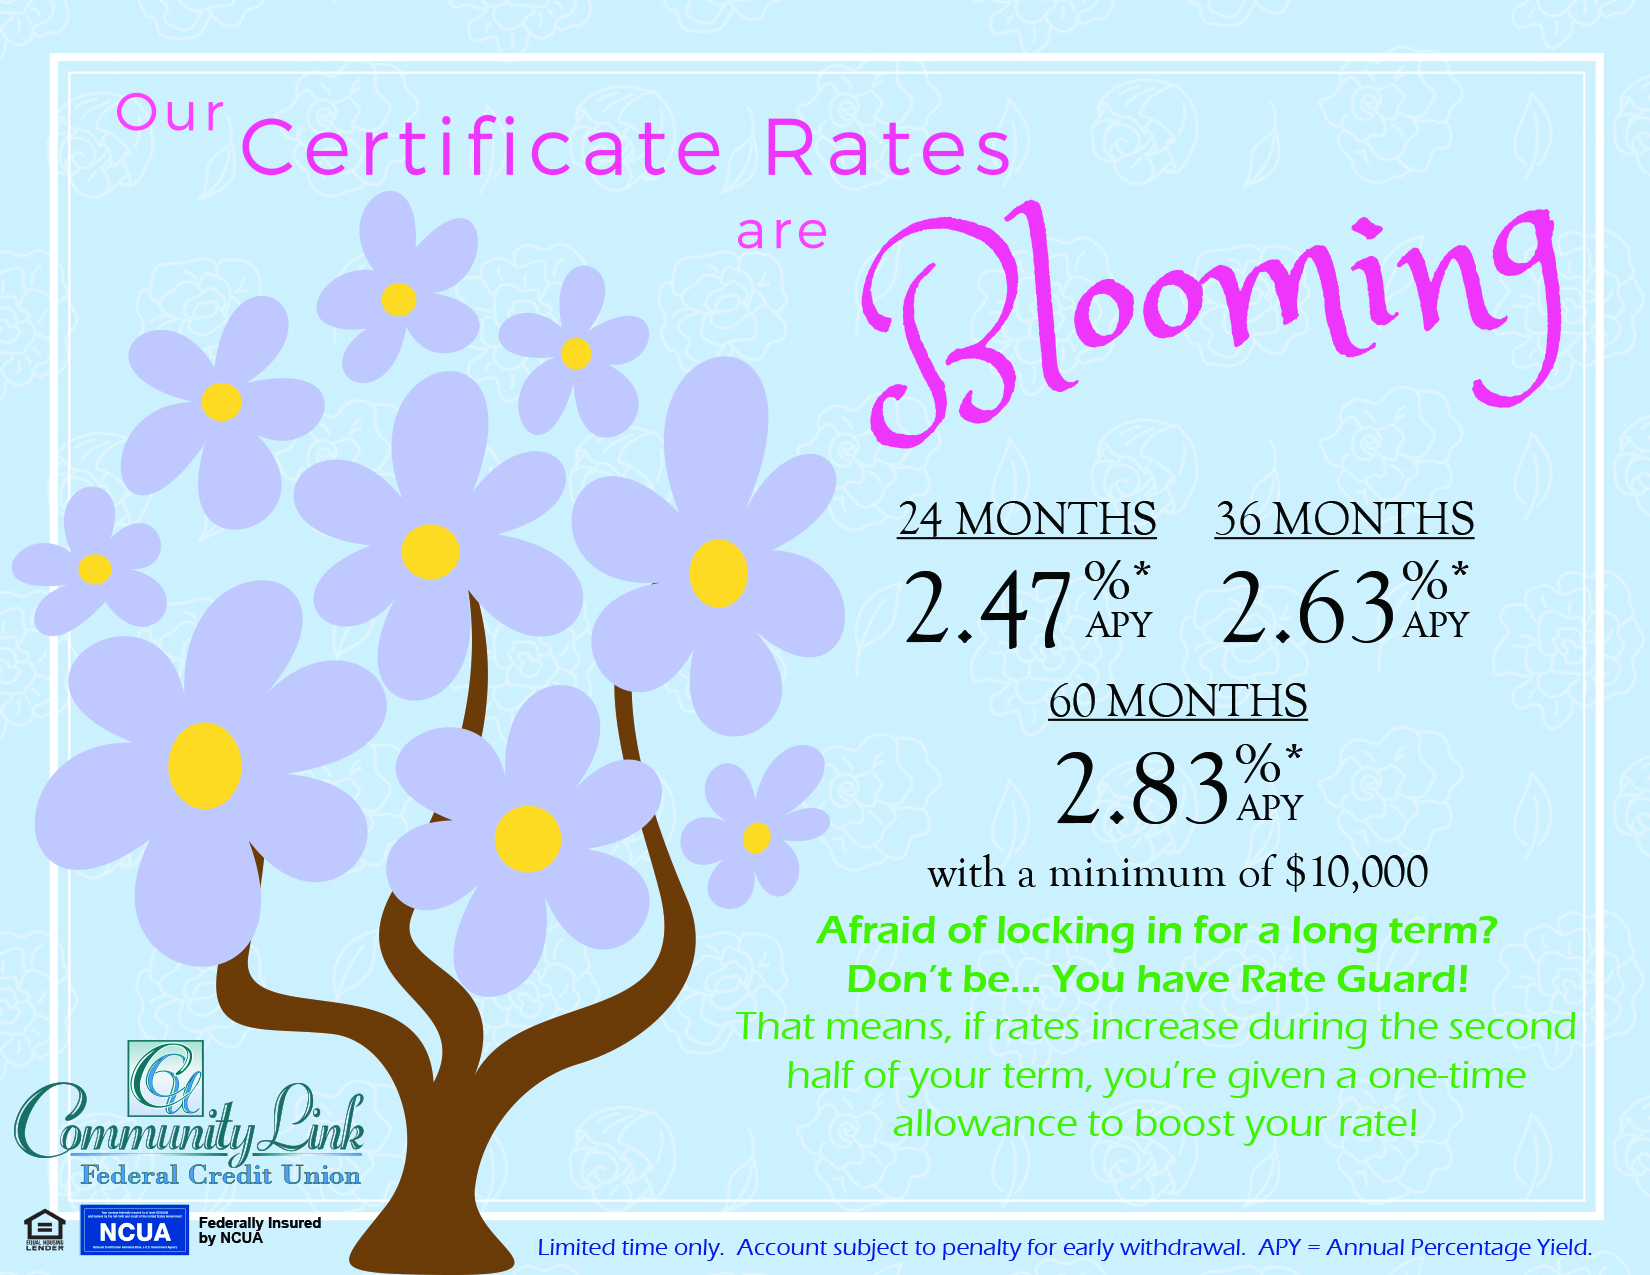 """Blue background with illustrated purple flowering tree. Ad states """"Our Certificate Rates are Blooming!"""" with a minimum of $10,000. Rate Guard applies."""